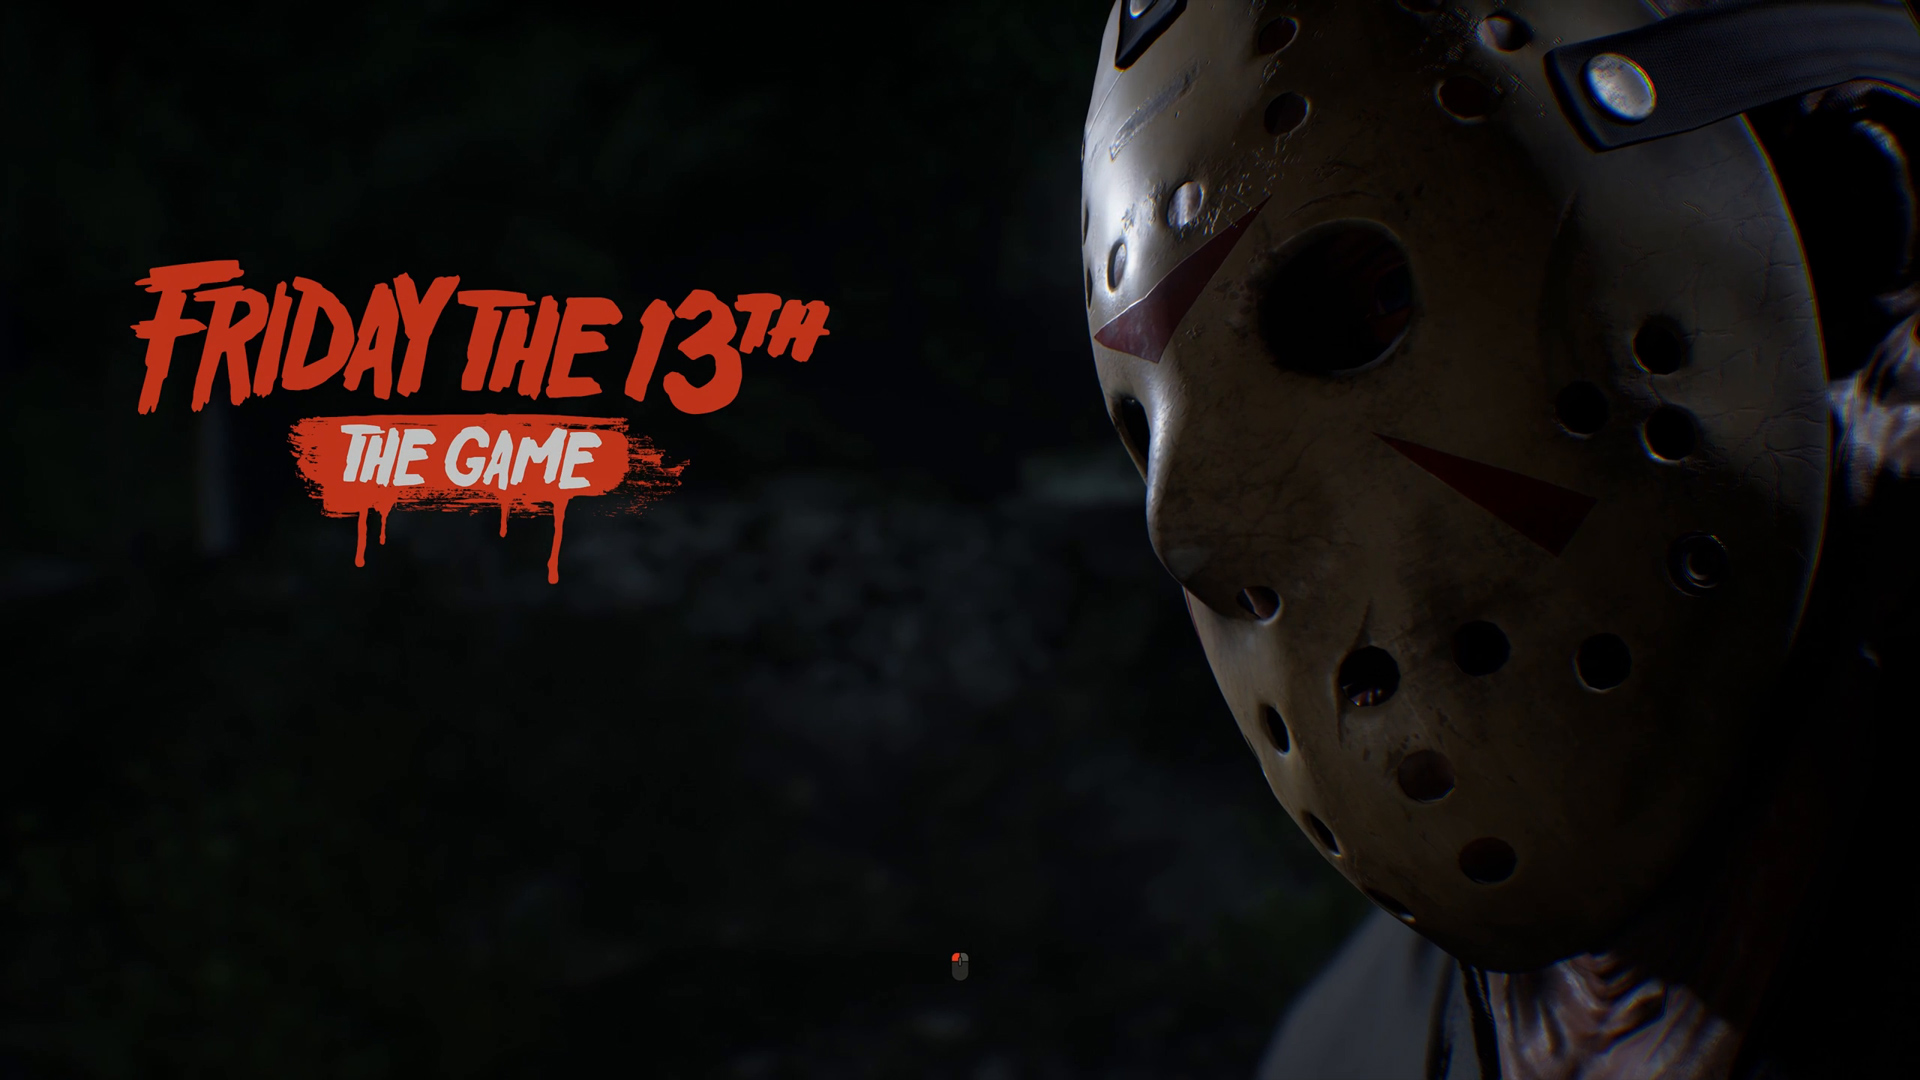 Jason Z Friday The 13th Friday The 13th Wallpaper Game 374537